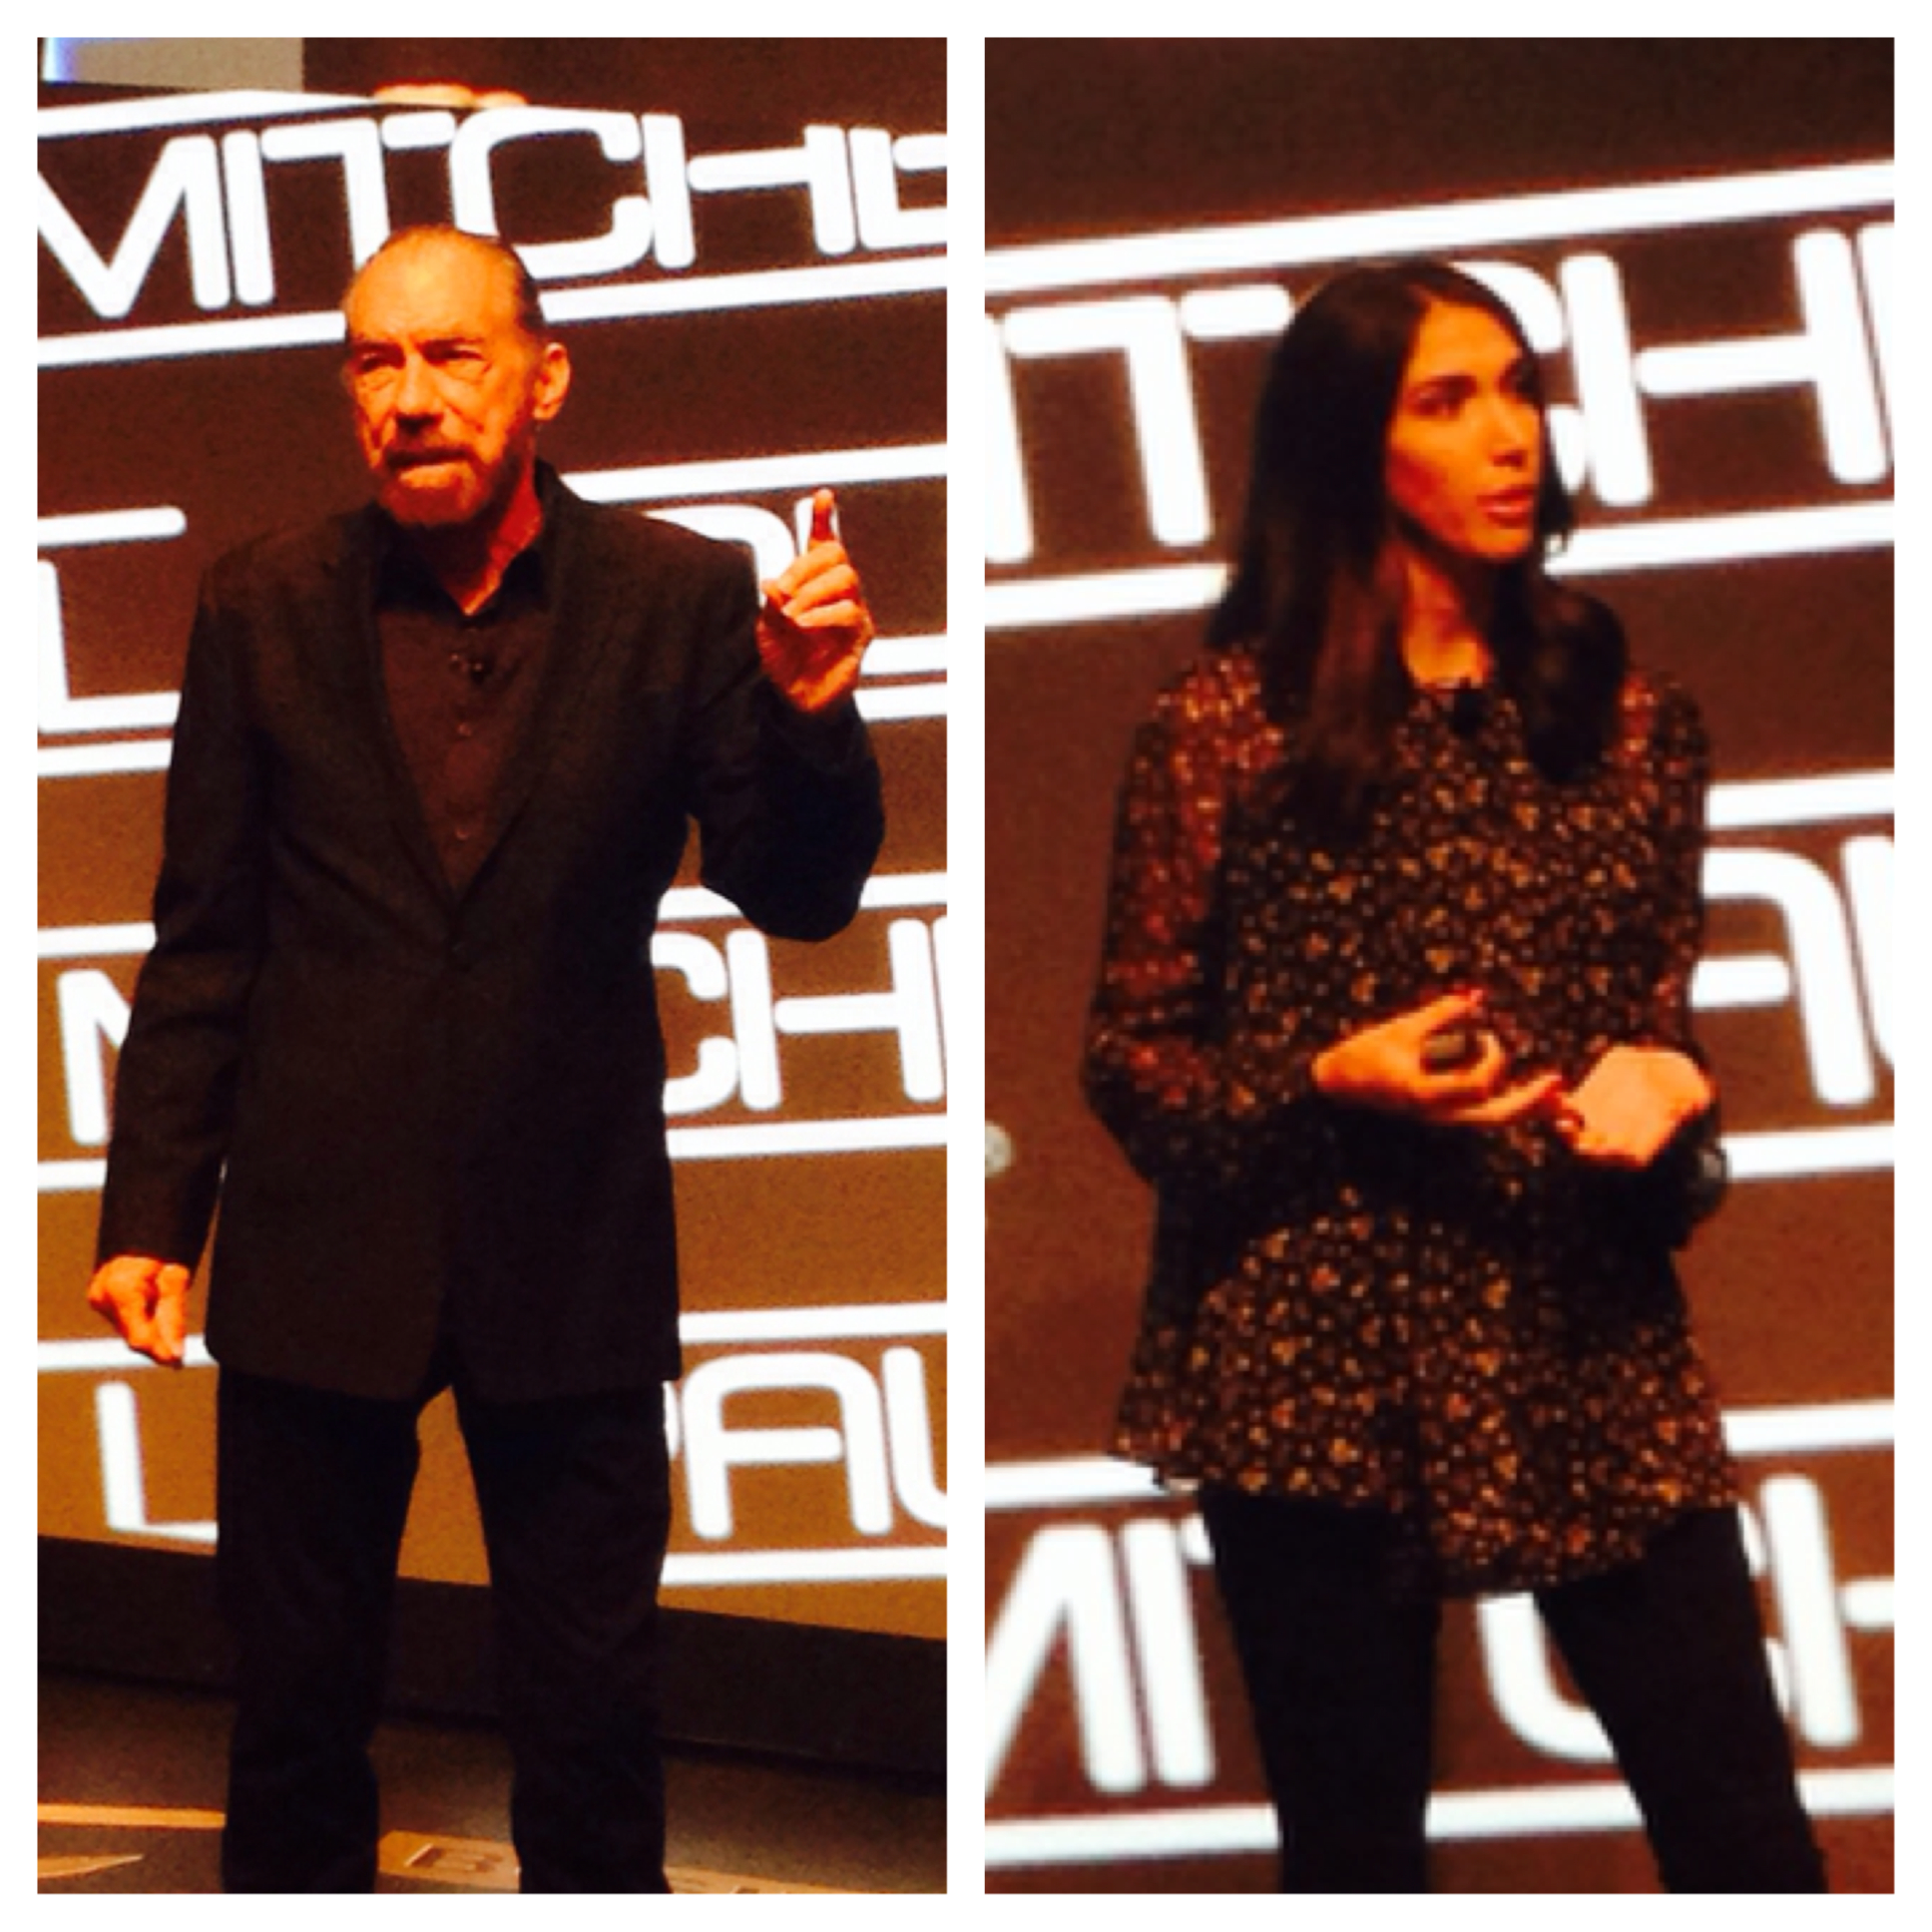 Paul Mitchell Business Revolution: Advice from John Paul and Michaeline DeJoria